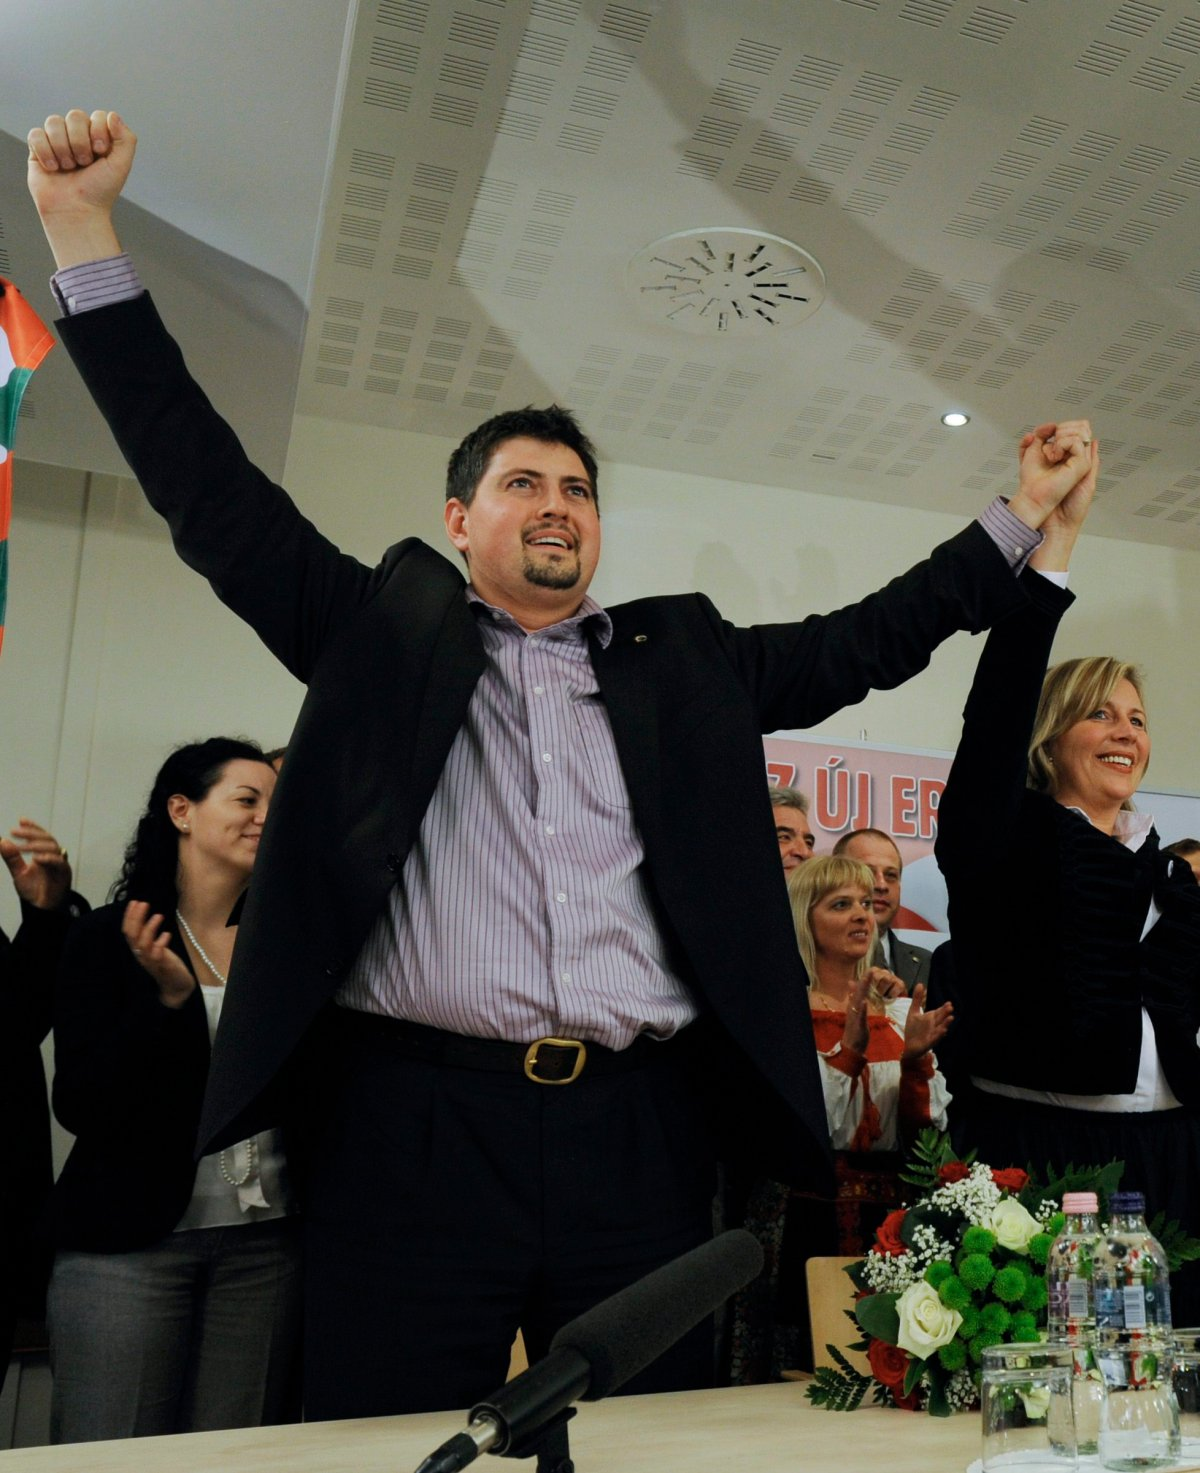 his file photo dated on June 7, 2009 shows Hungary's far right party, Jobbik's, Csanad Szegedi, left, and Krisztina Morvai, right, celebrating their entry into the European Parliament after the European parliamentary election in Budapest, Hungary. Szegedi, who was notorious for his incendiary comments on Jews, acknowledged in June that his grandparents on his mother's side were Jews. After resigning last month from all his party positions he was also asked by Jobbik to give up his seat in the European Parliament as well. (AP Photo/Bela Szandelszky, File).